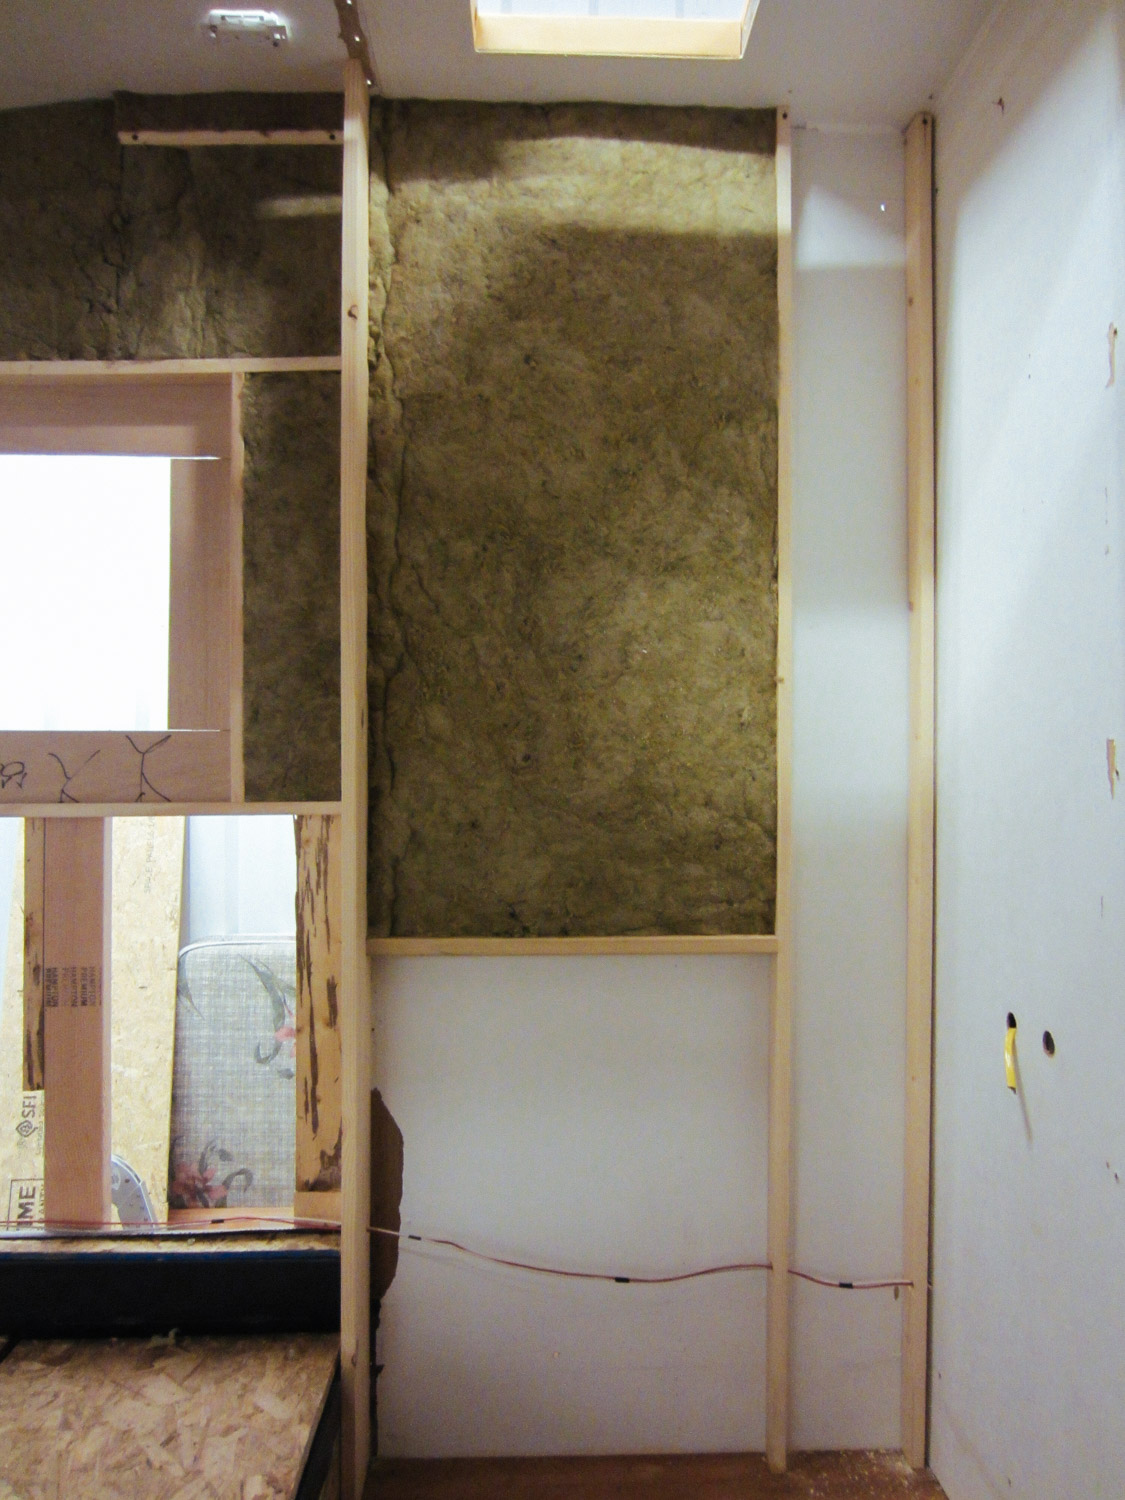 We added studs to the shower wall so we could insulate that space with mineral wool.